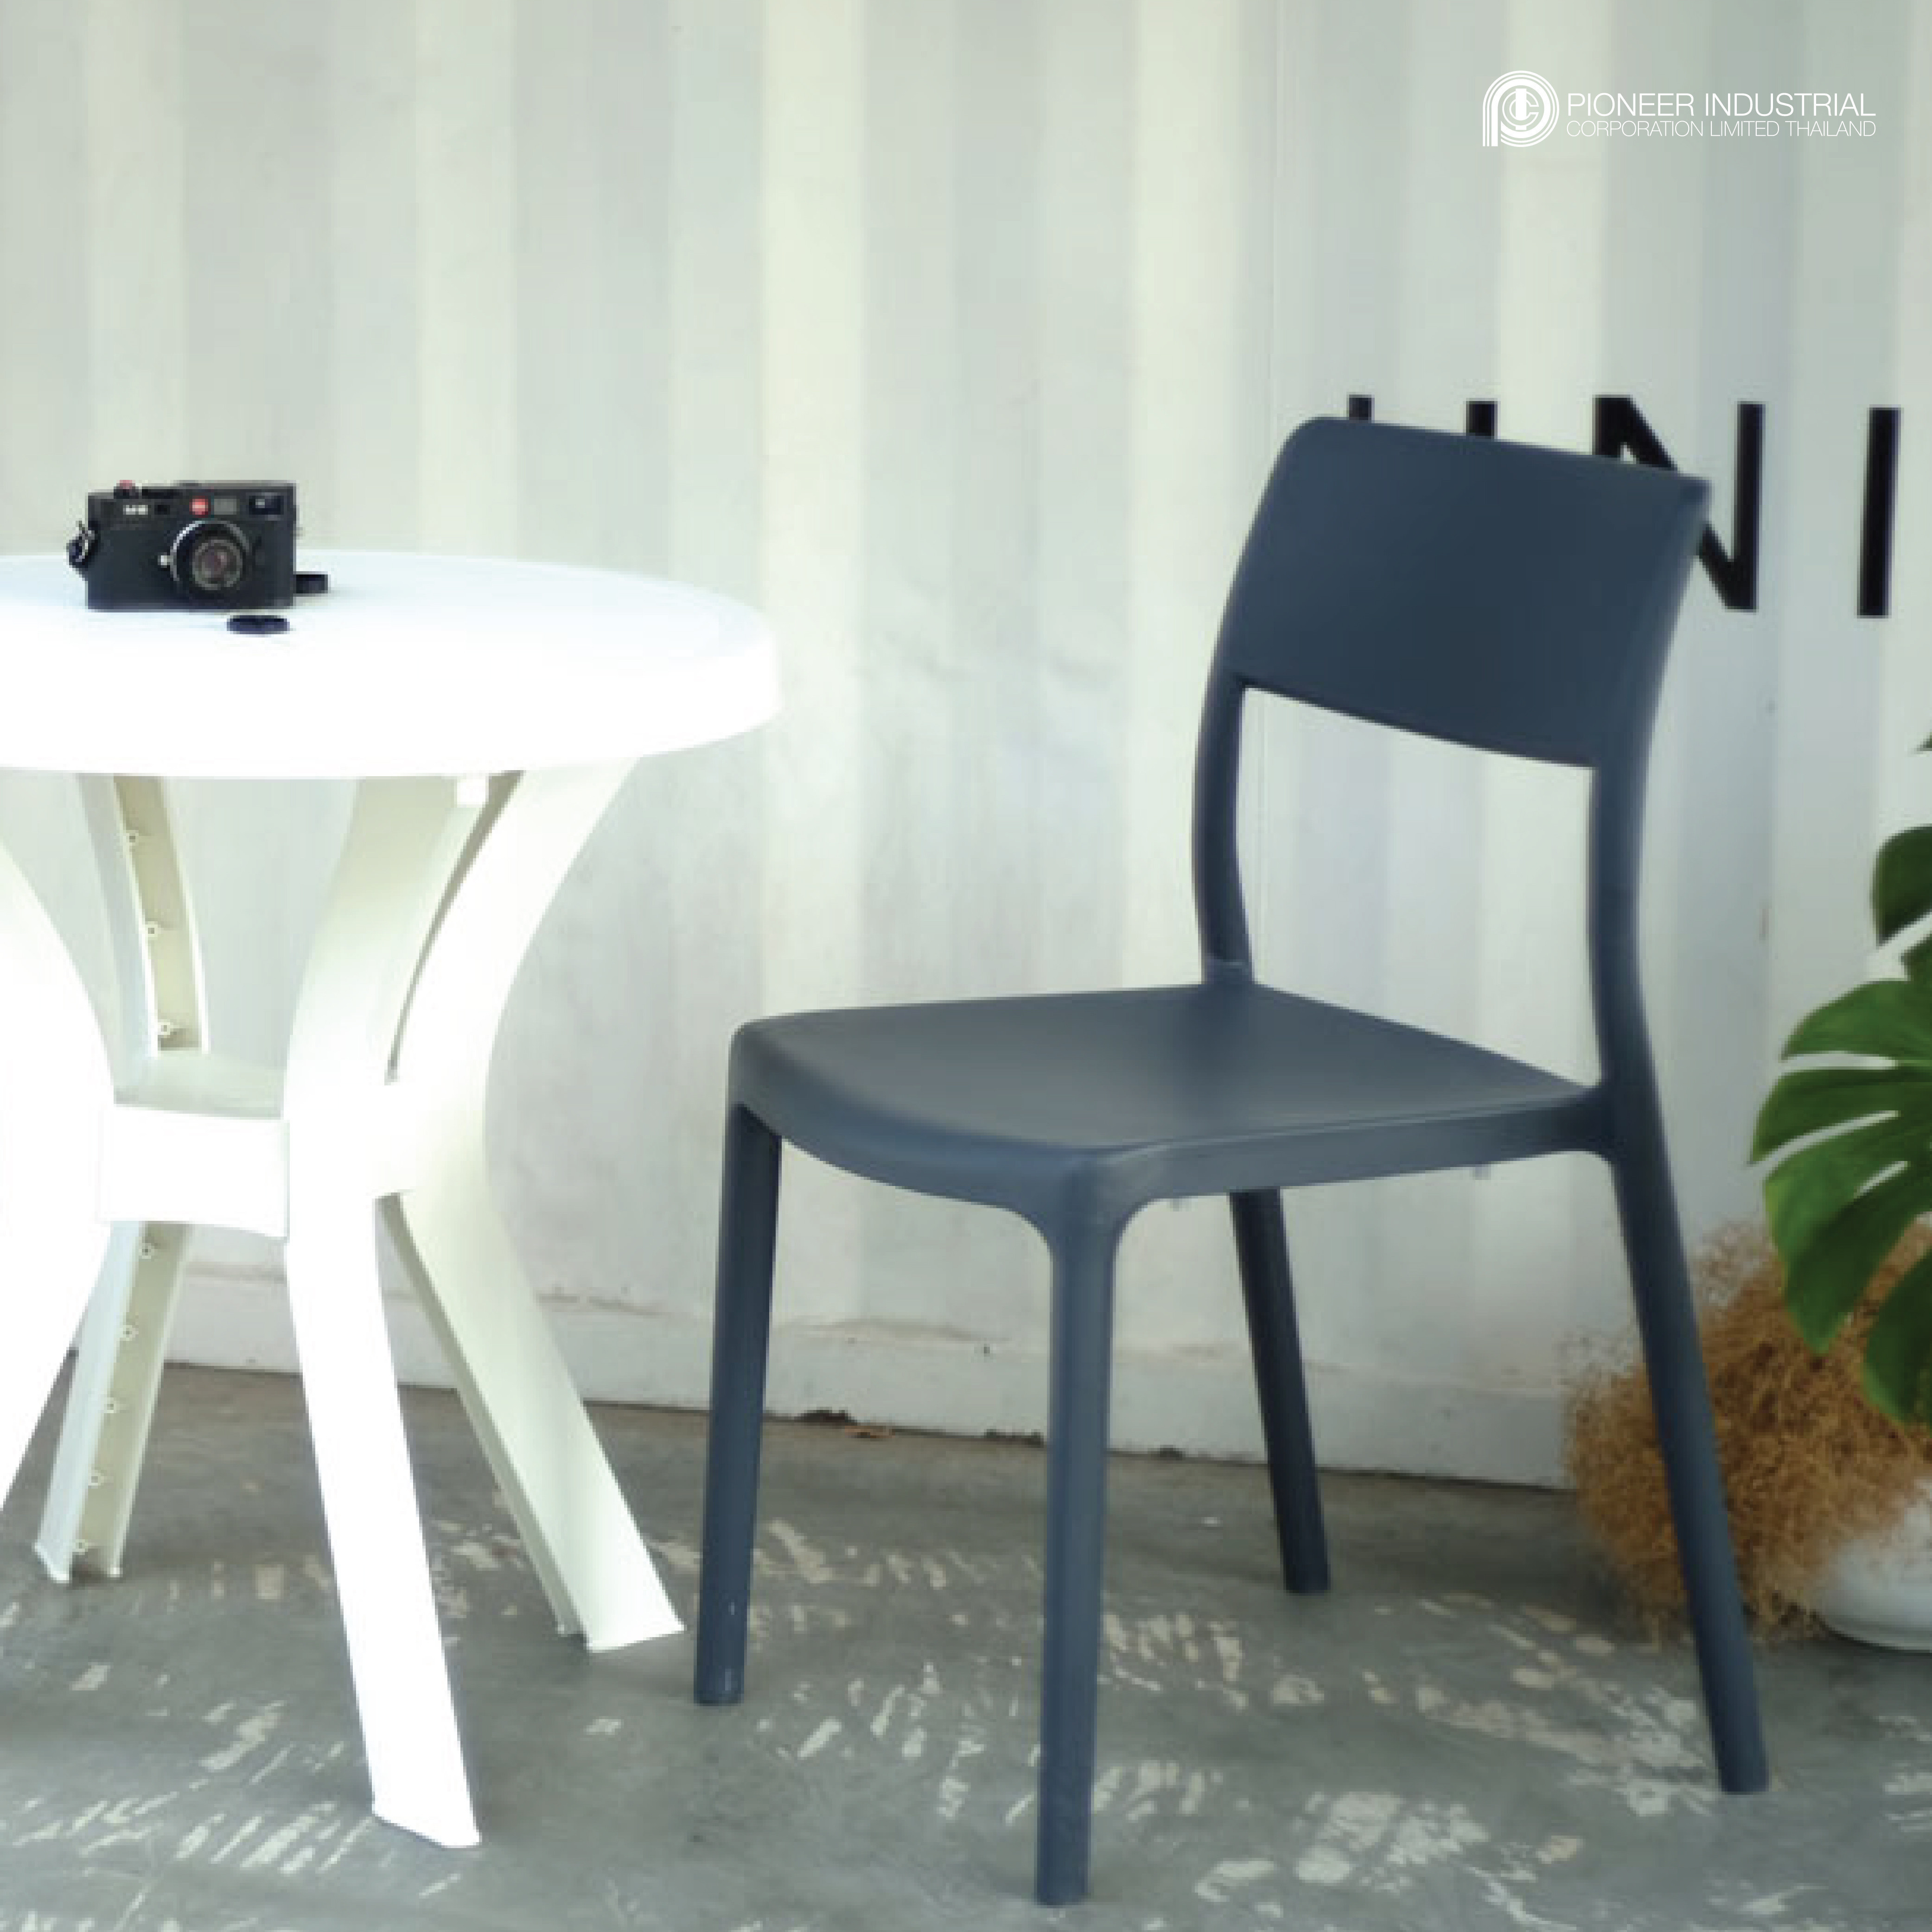 Plastic chairs furniture outdoor furniture shunde furniture mall Pioneer Thailand manufacturer exporter high quality products